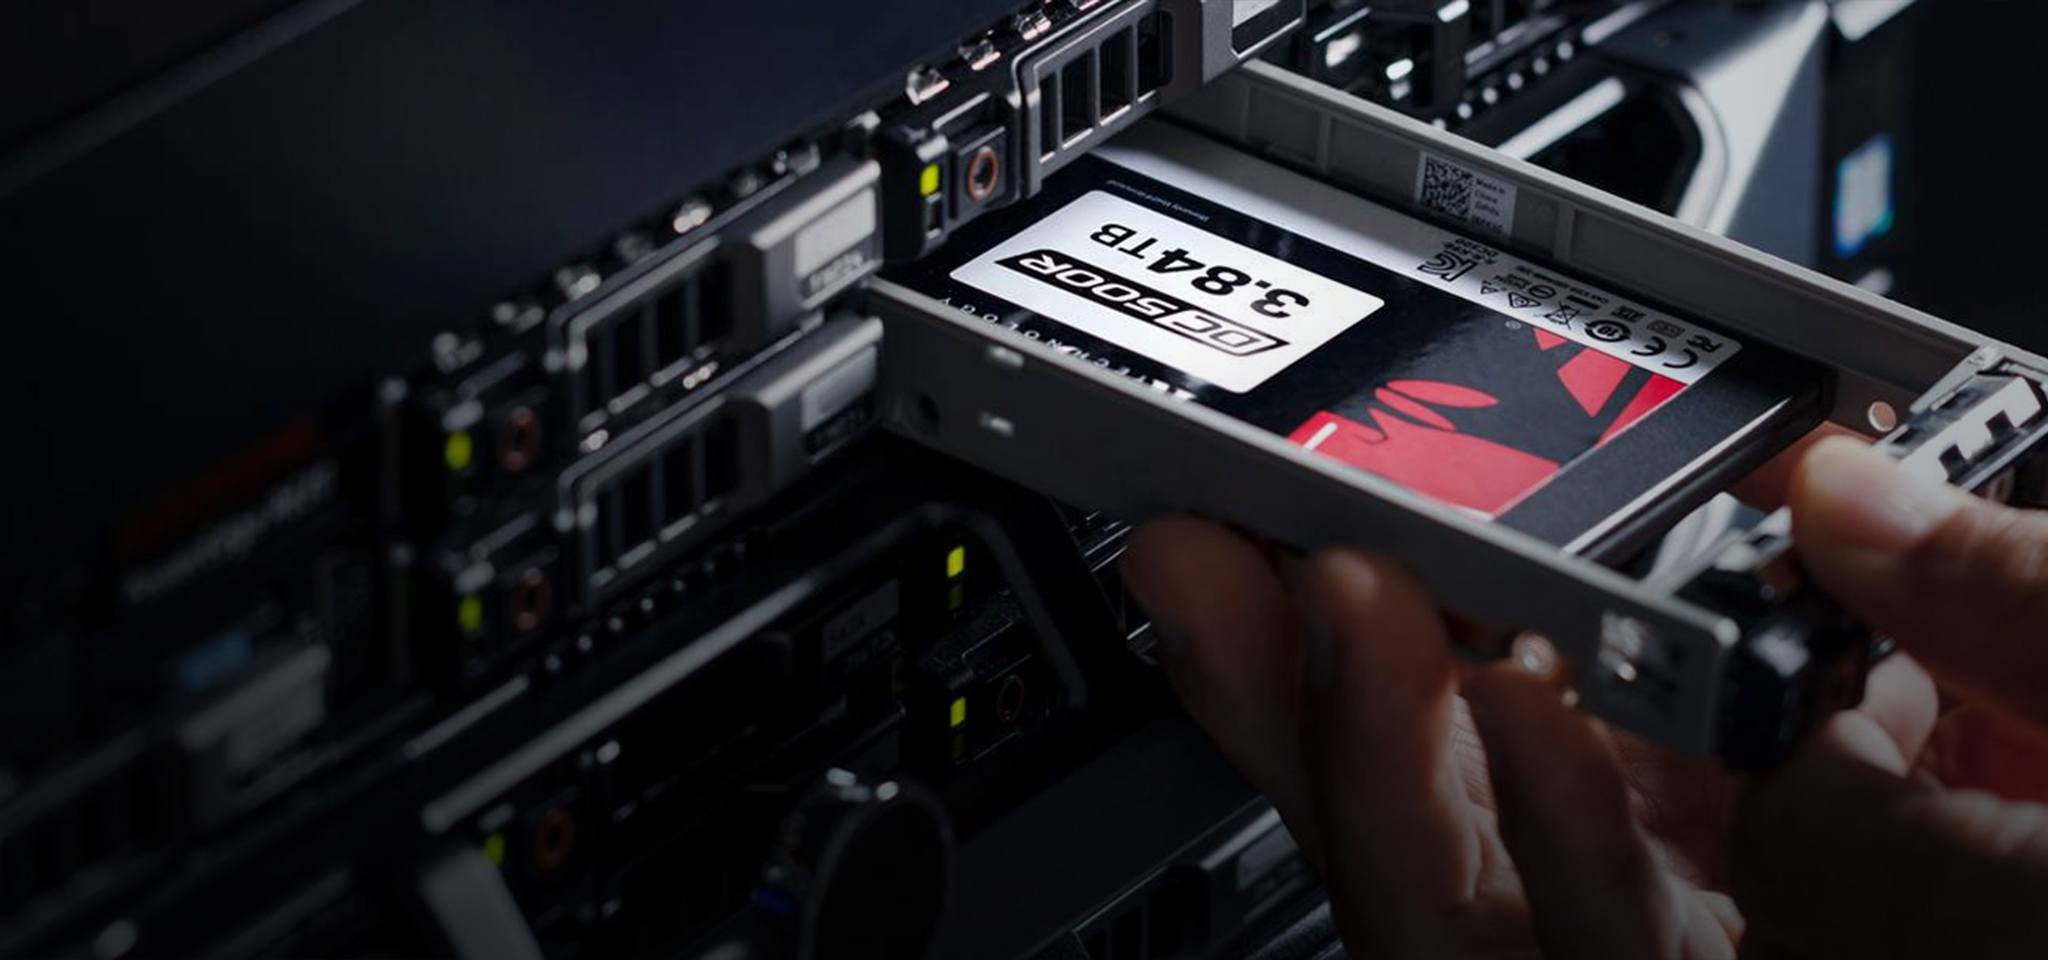 a hand installing Kingston DC500R SSD in a server rack